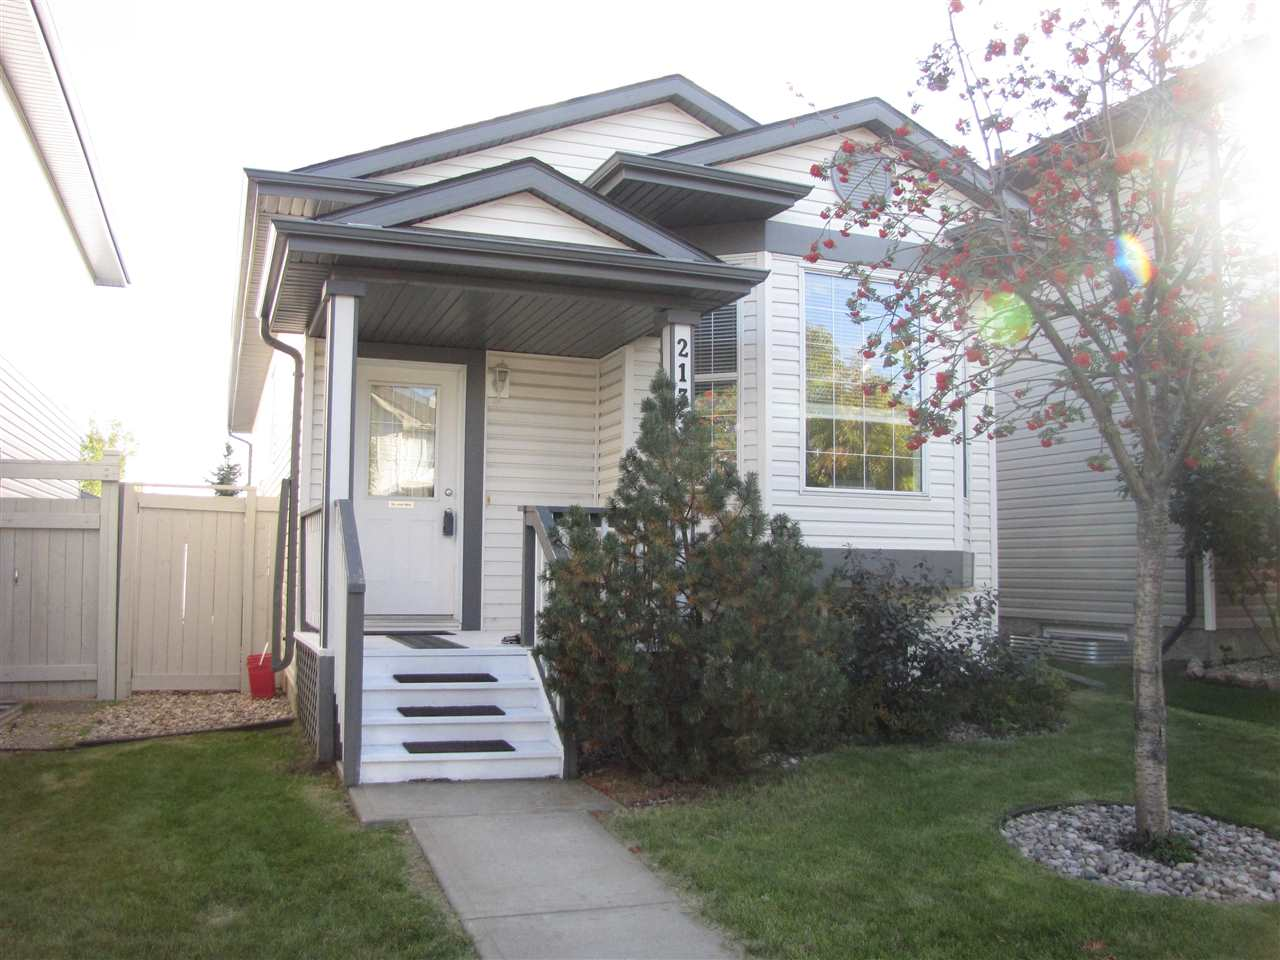 21337 87A Avenue, 3 bed, 1 bath, at $344,900